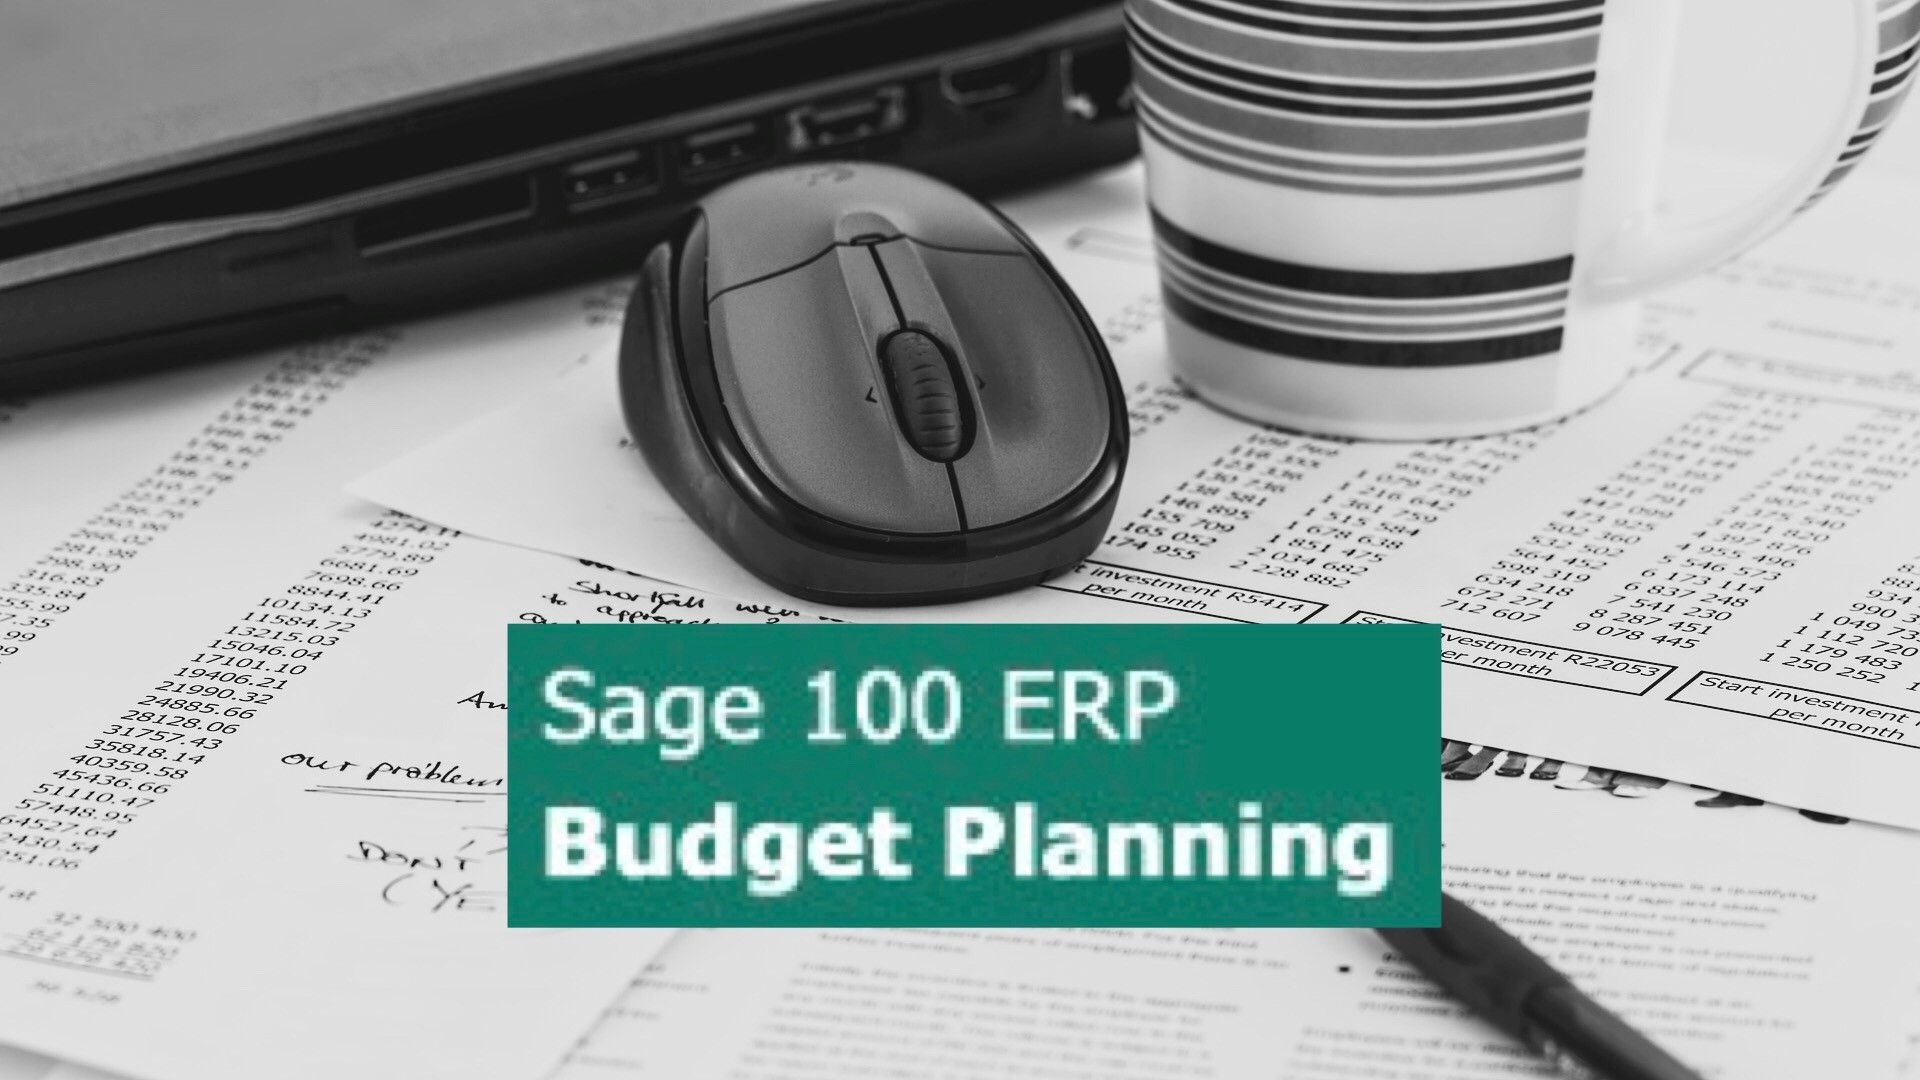 Sage 100 budgeting and Planning.jpg